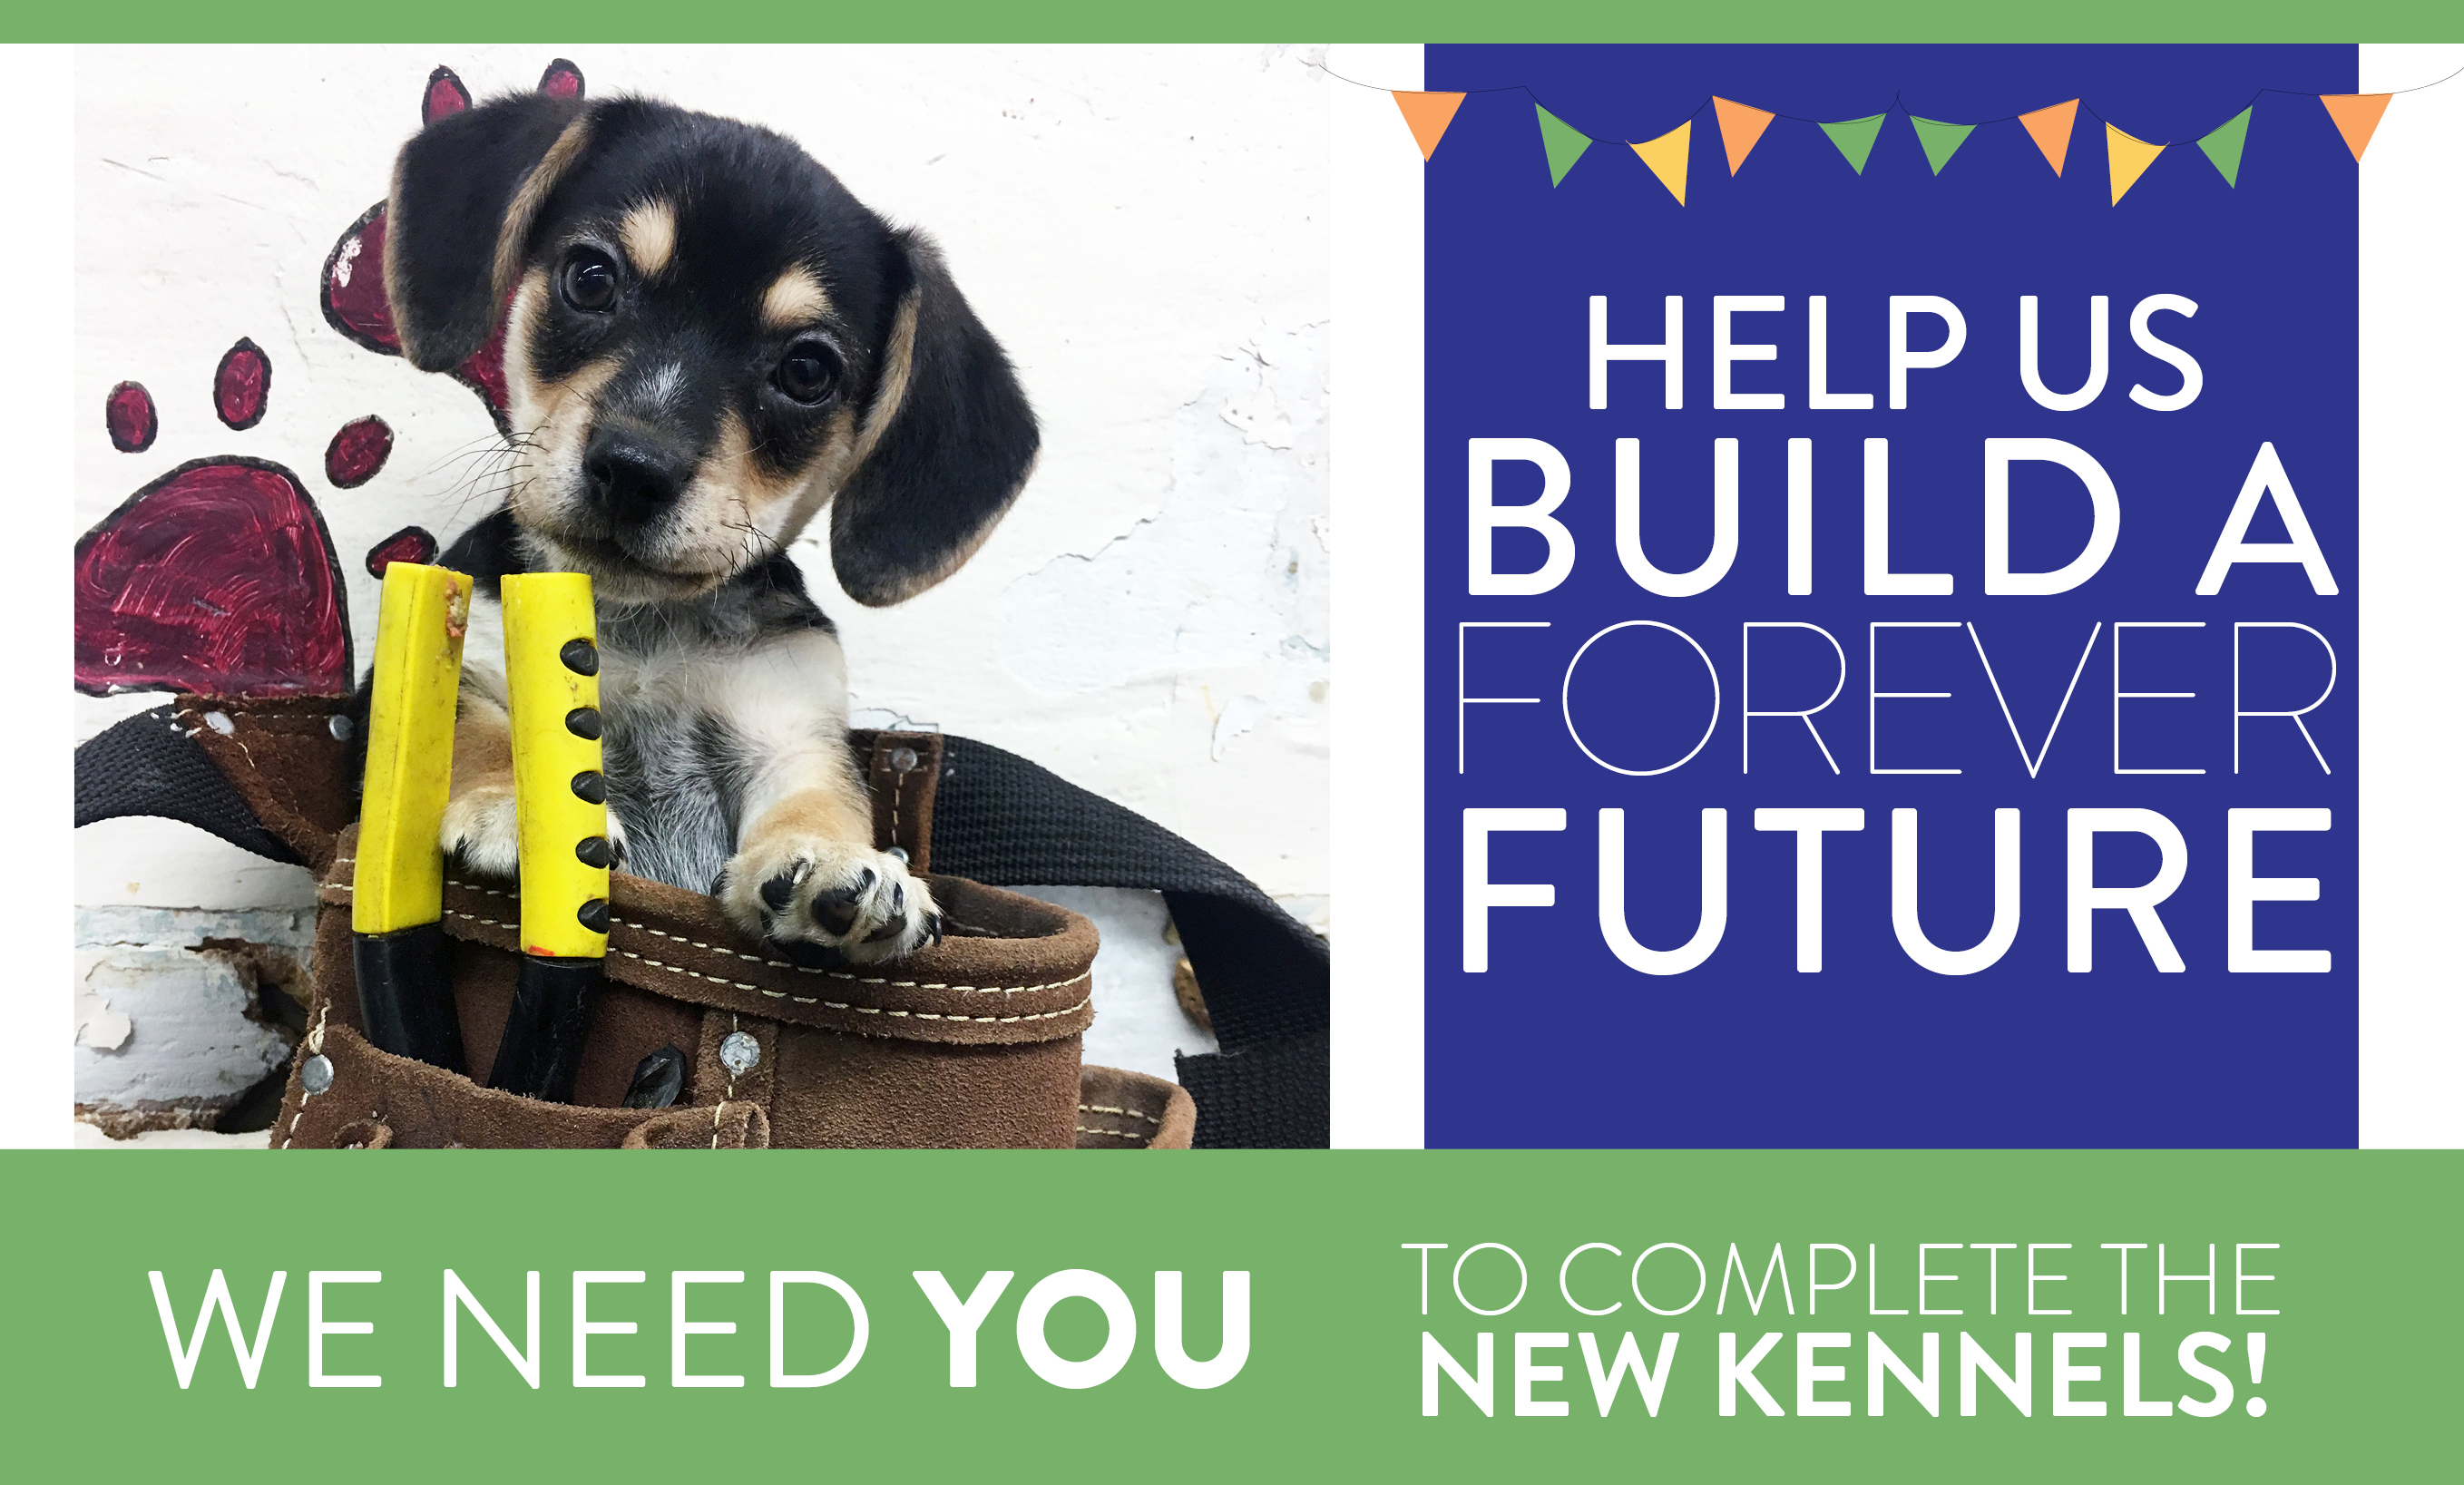 Help us build a forever future - Providence Animal Center